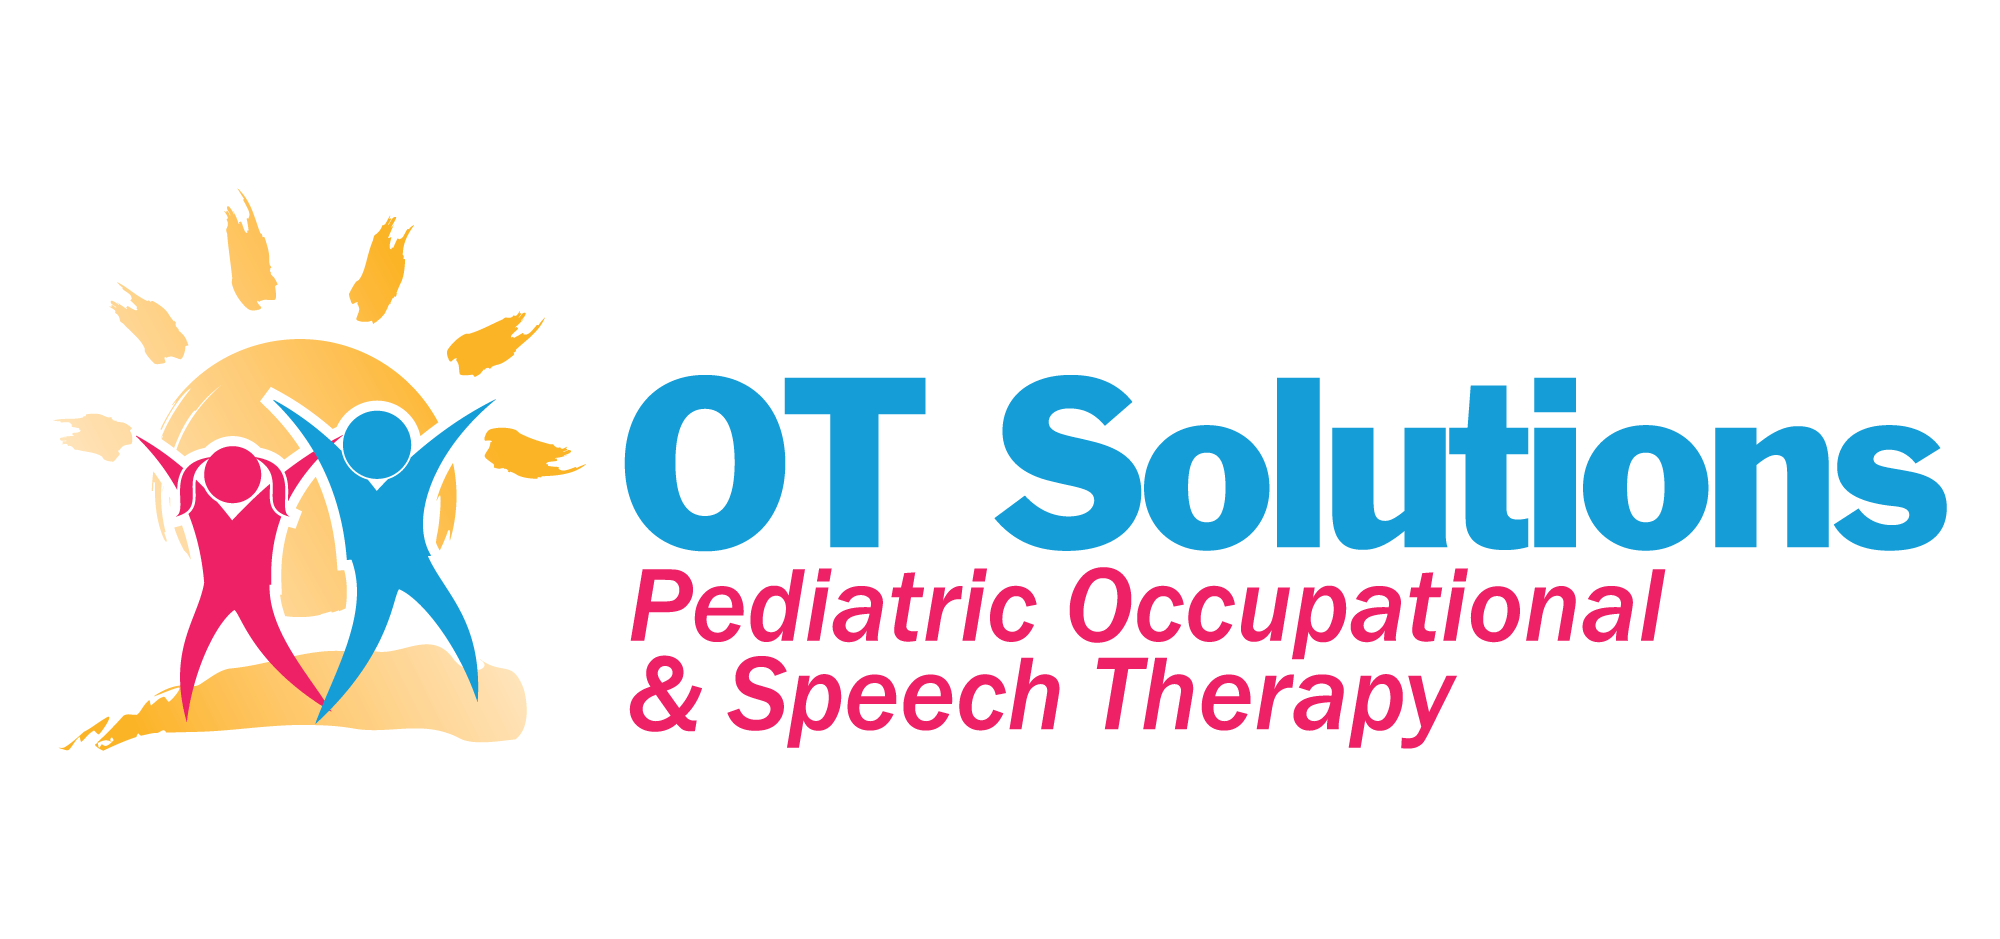 Pediatric Occupational and Speech Therapy Practice